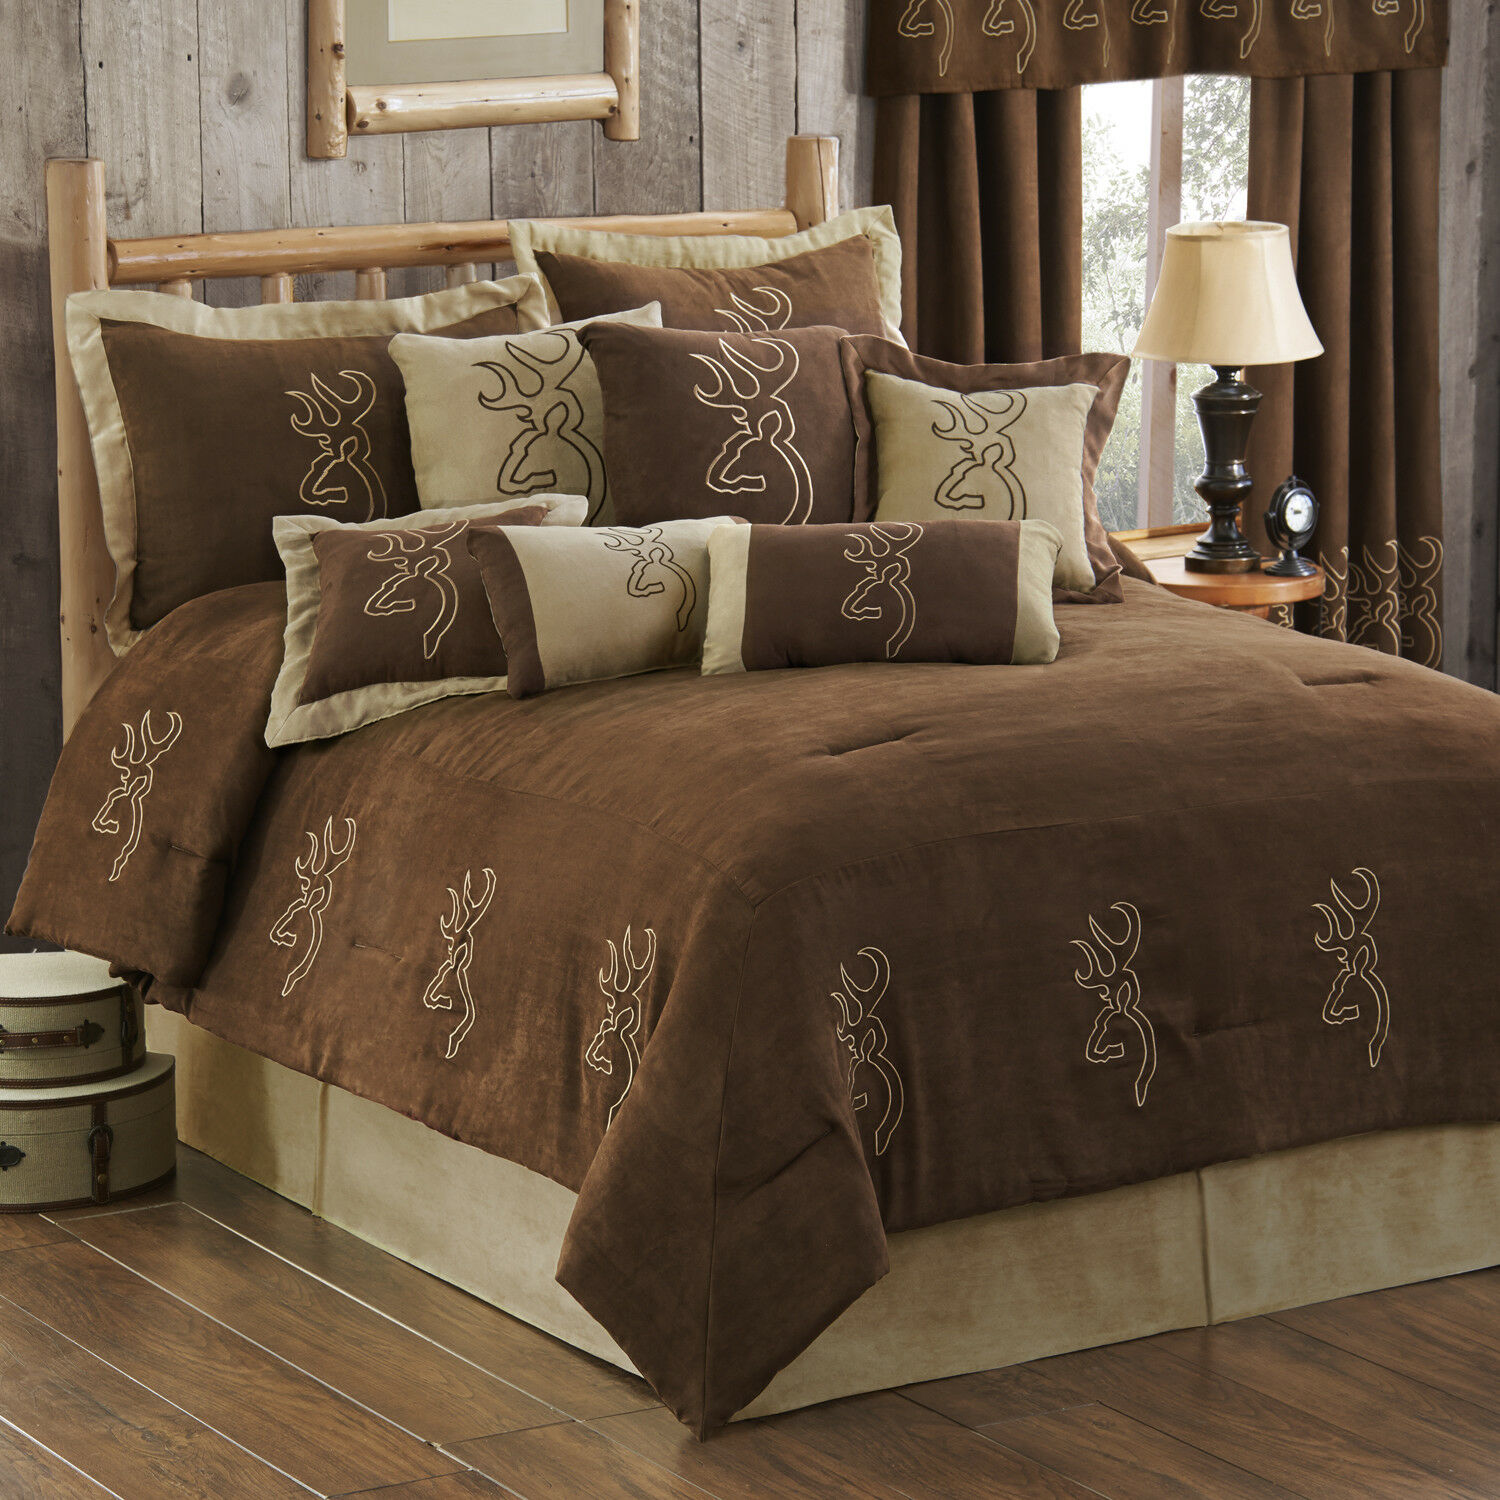 4 Decorative brauning Suede Bed Collection Pillows Add Drapery Panels & Valance